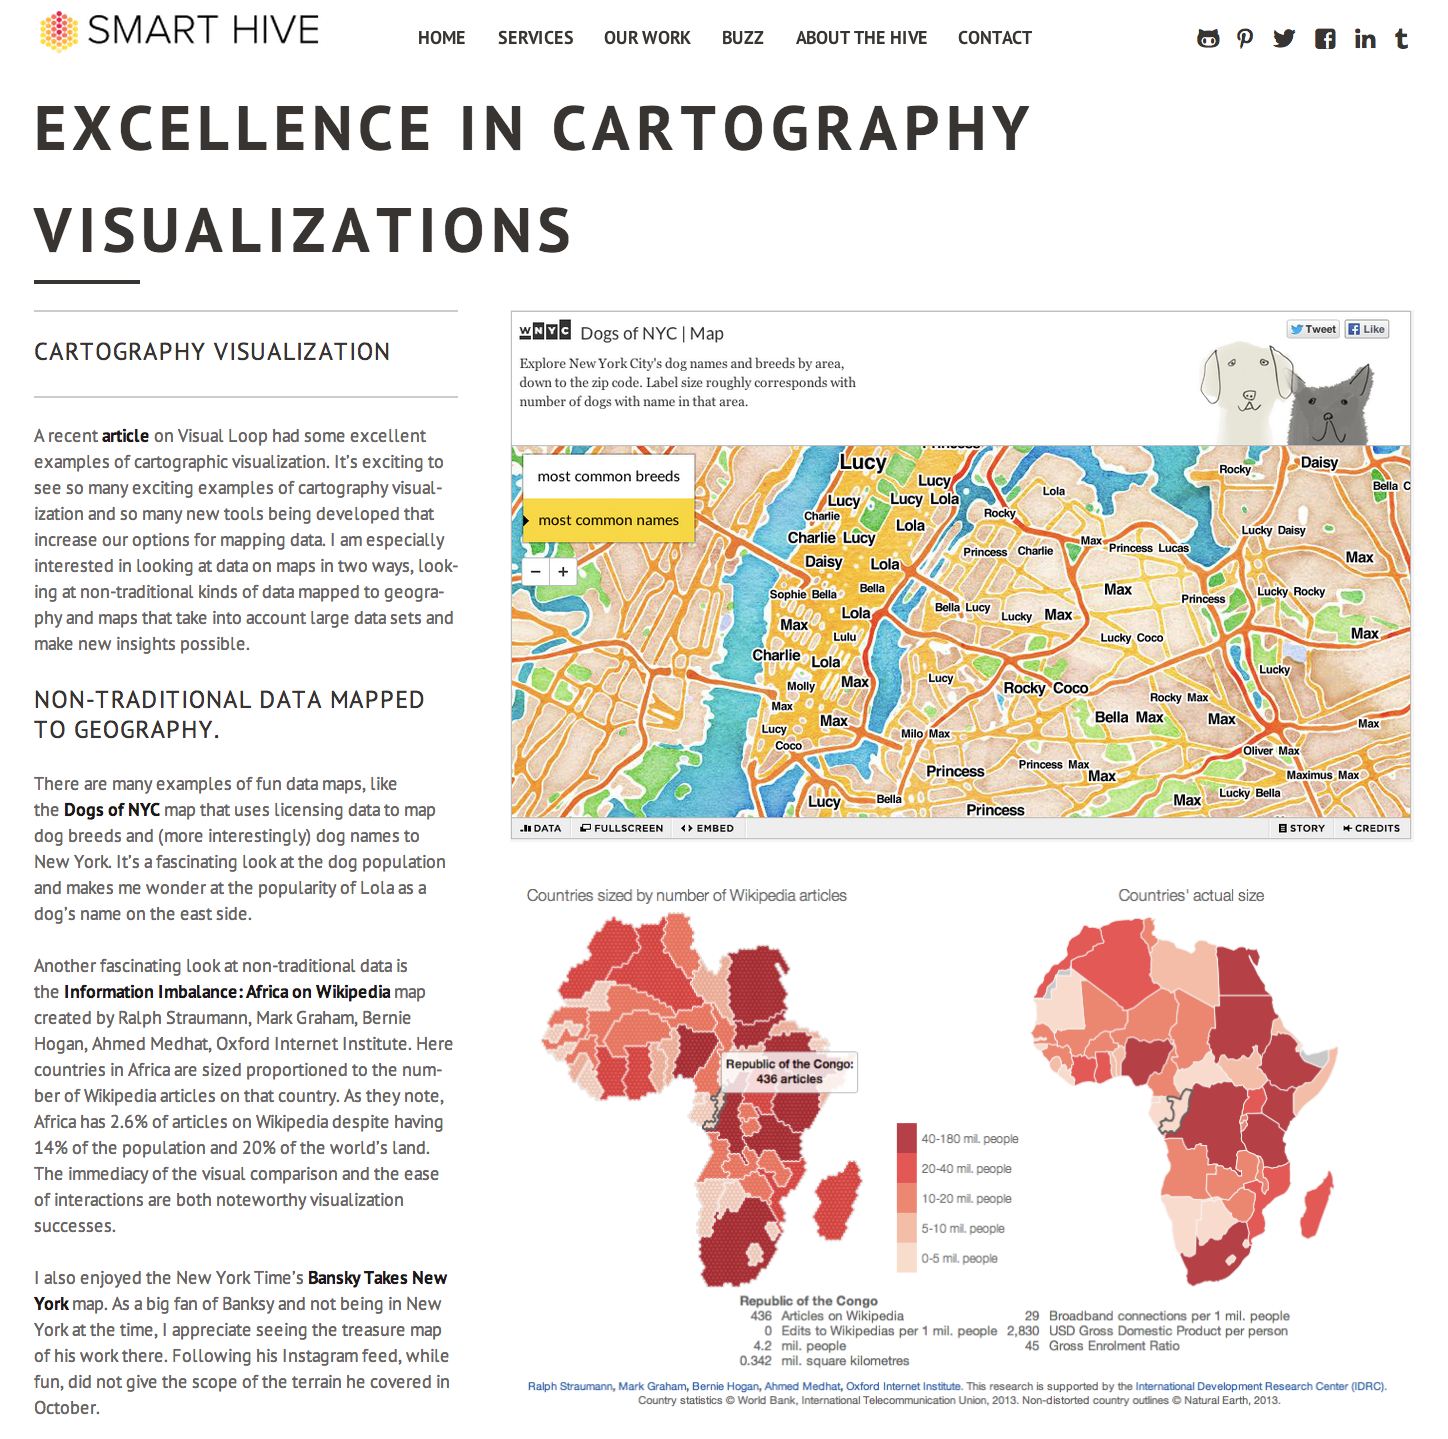 Wikipedia cartogram mentioned by Smart Hive